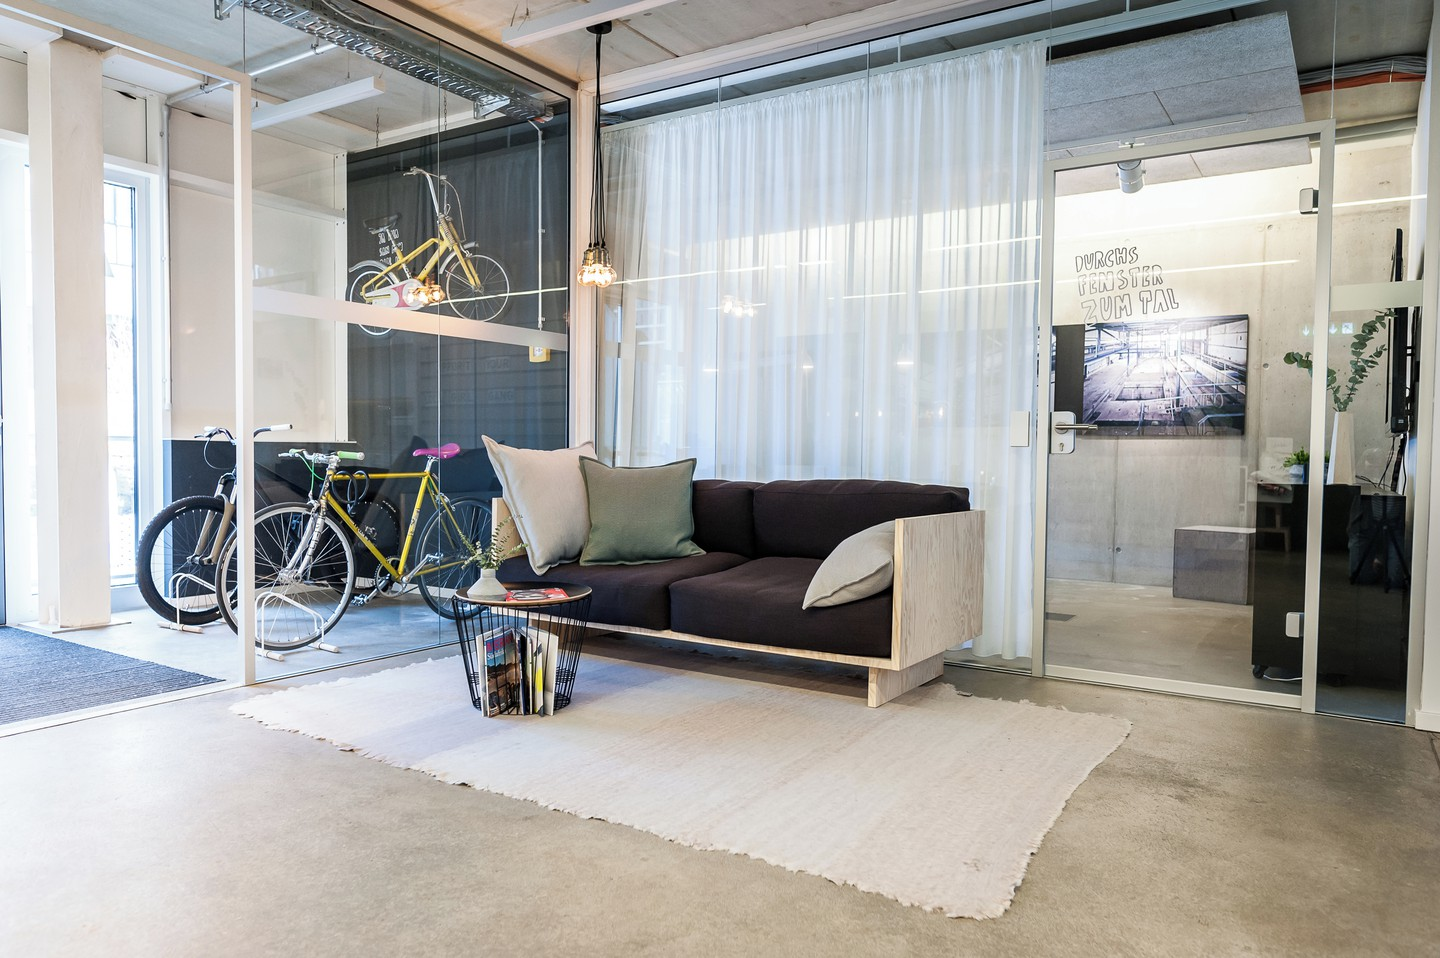 Munich conference rooms Unusual CORVATSCH  - Loft Location & Creative Space image 1